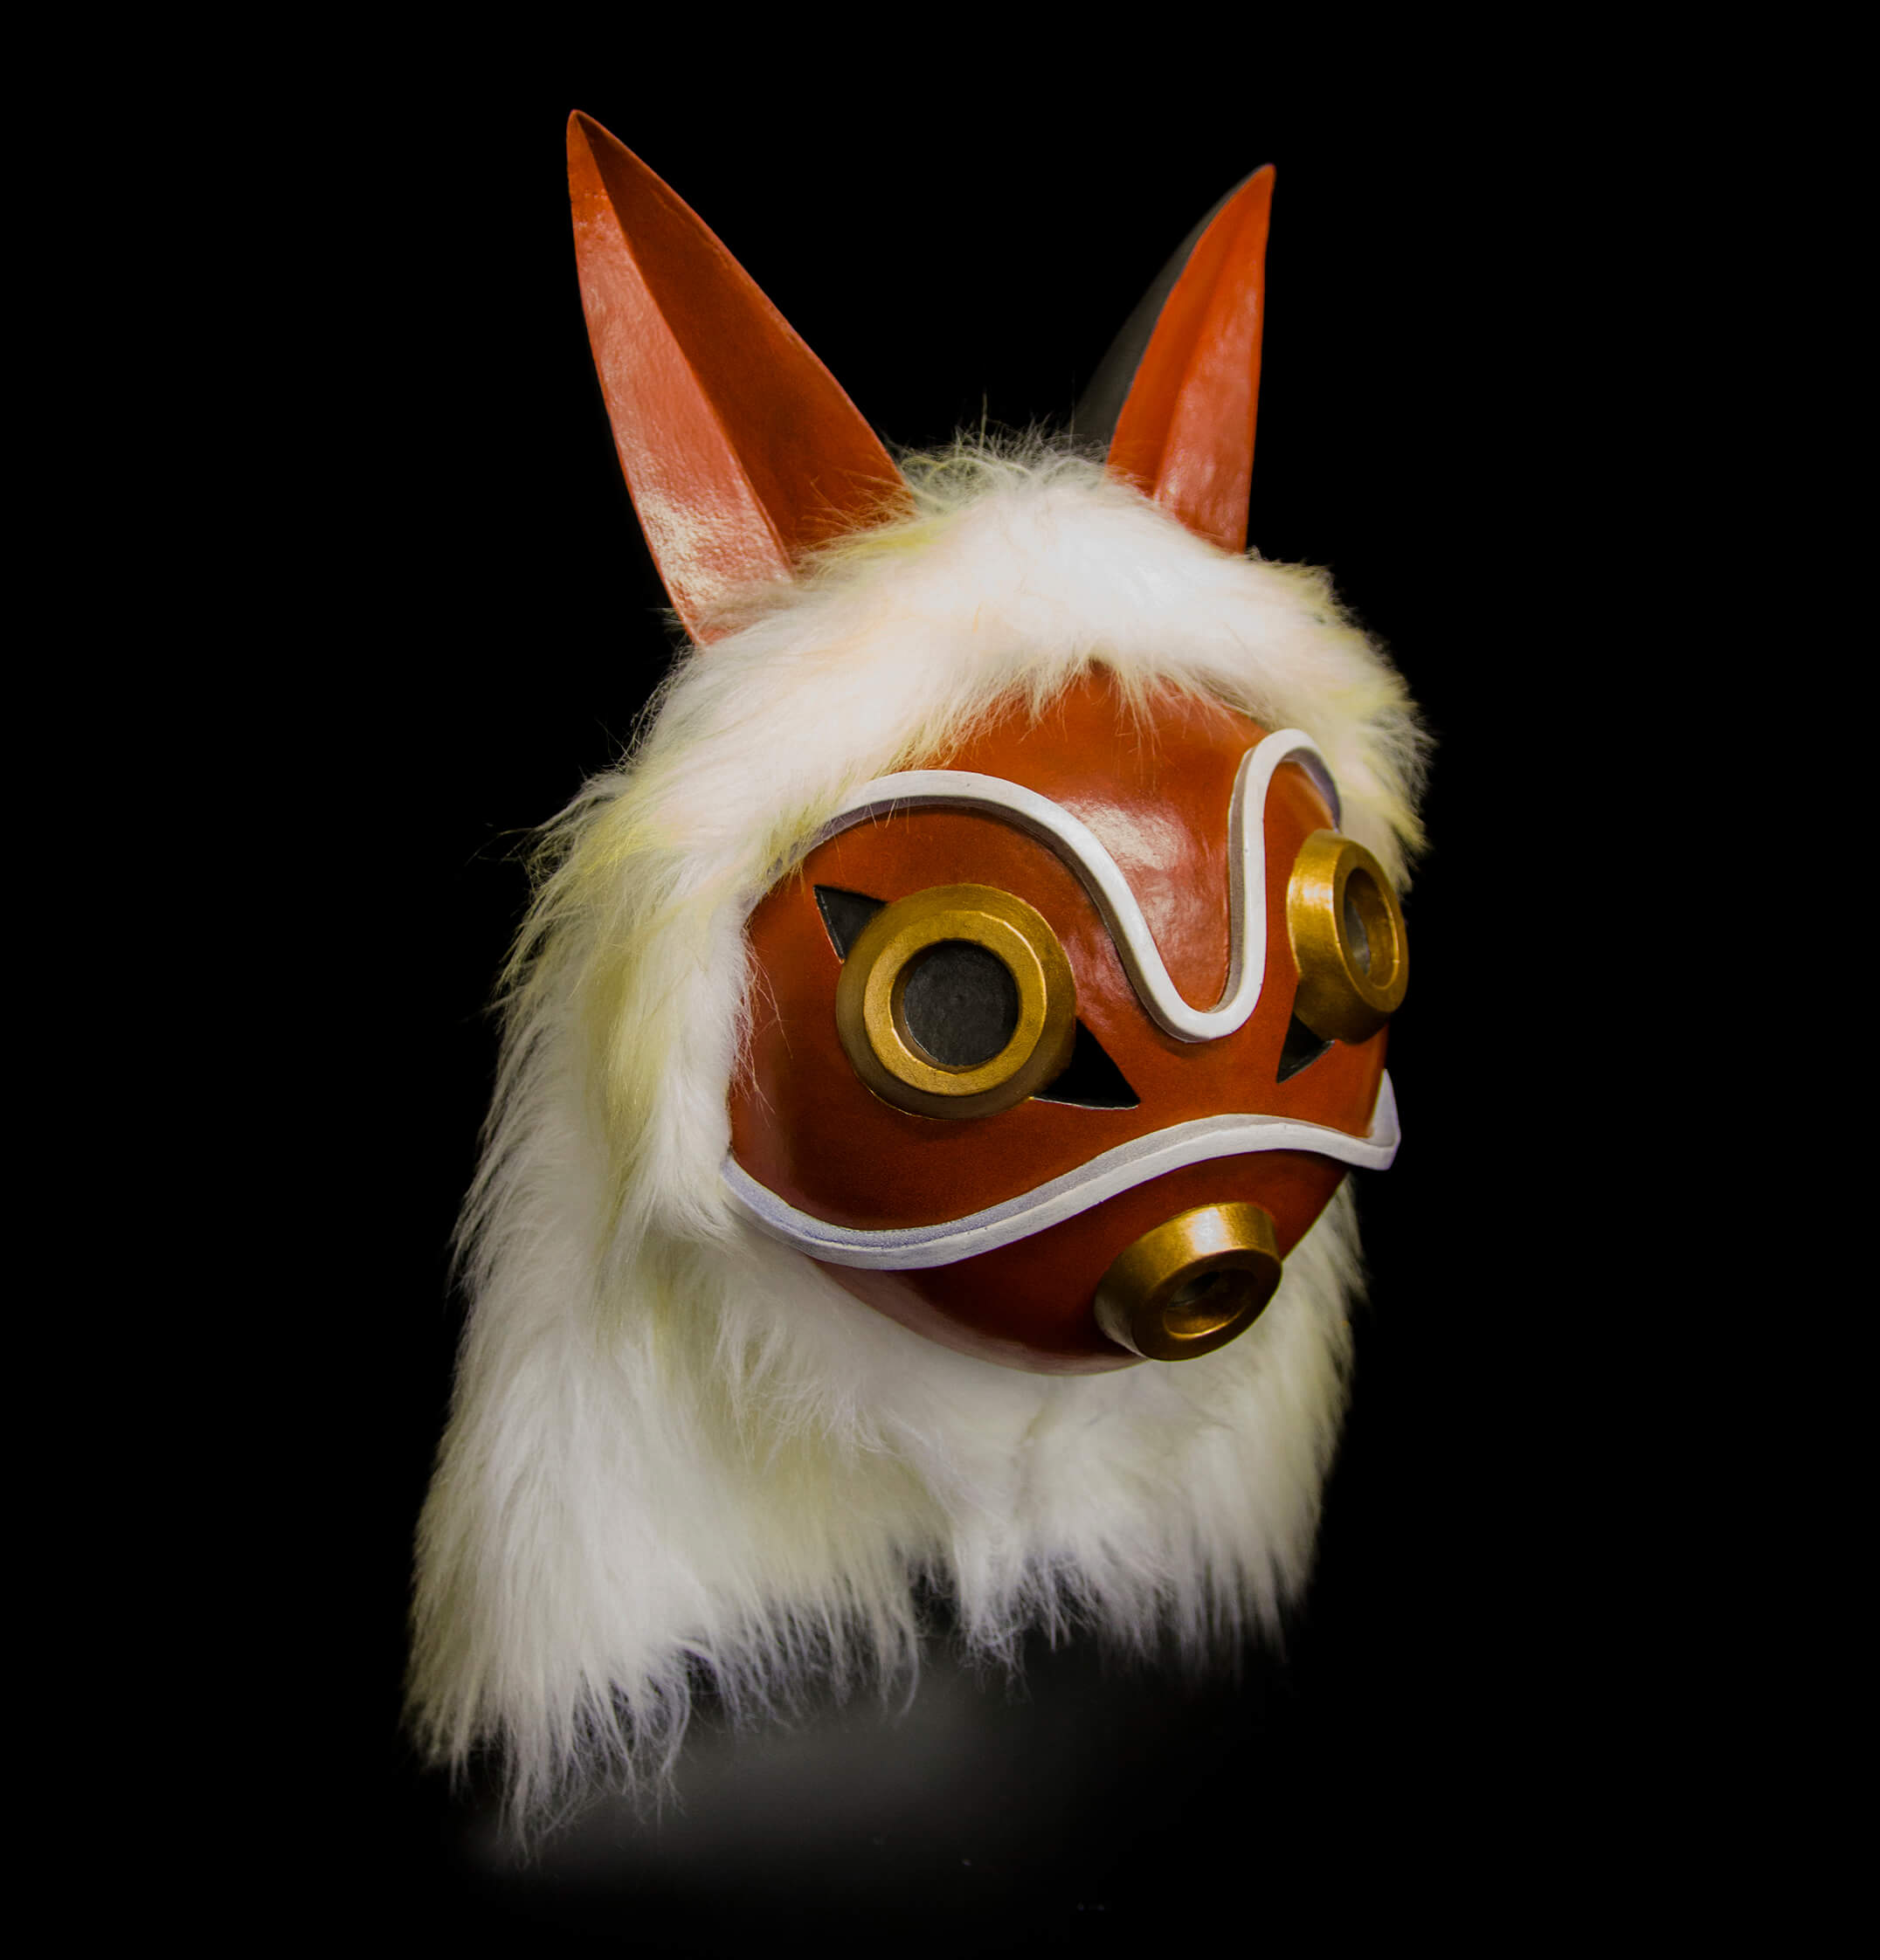 Princess mononoke ministry of masks princess4 voltagebd Image collections